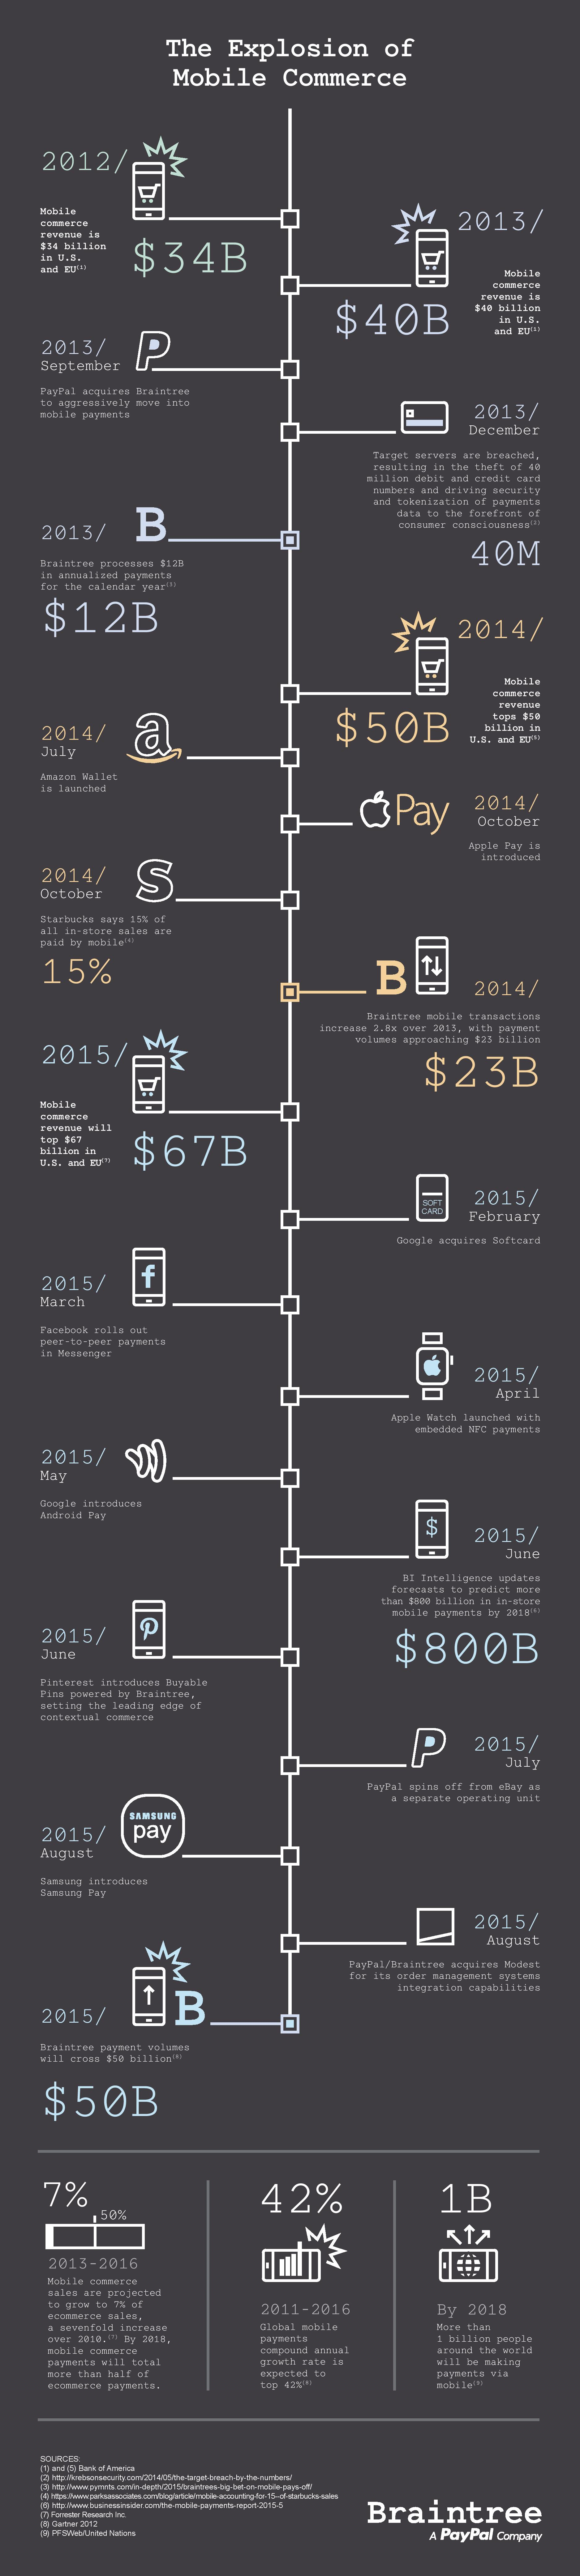 INFOGRAPHIC Braintree - The Explosion of Mobile Commerce 2013-2015 FINAL DRAFT UPDATE-page-001